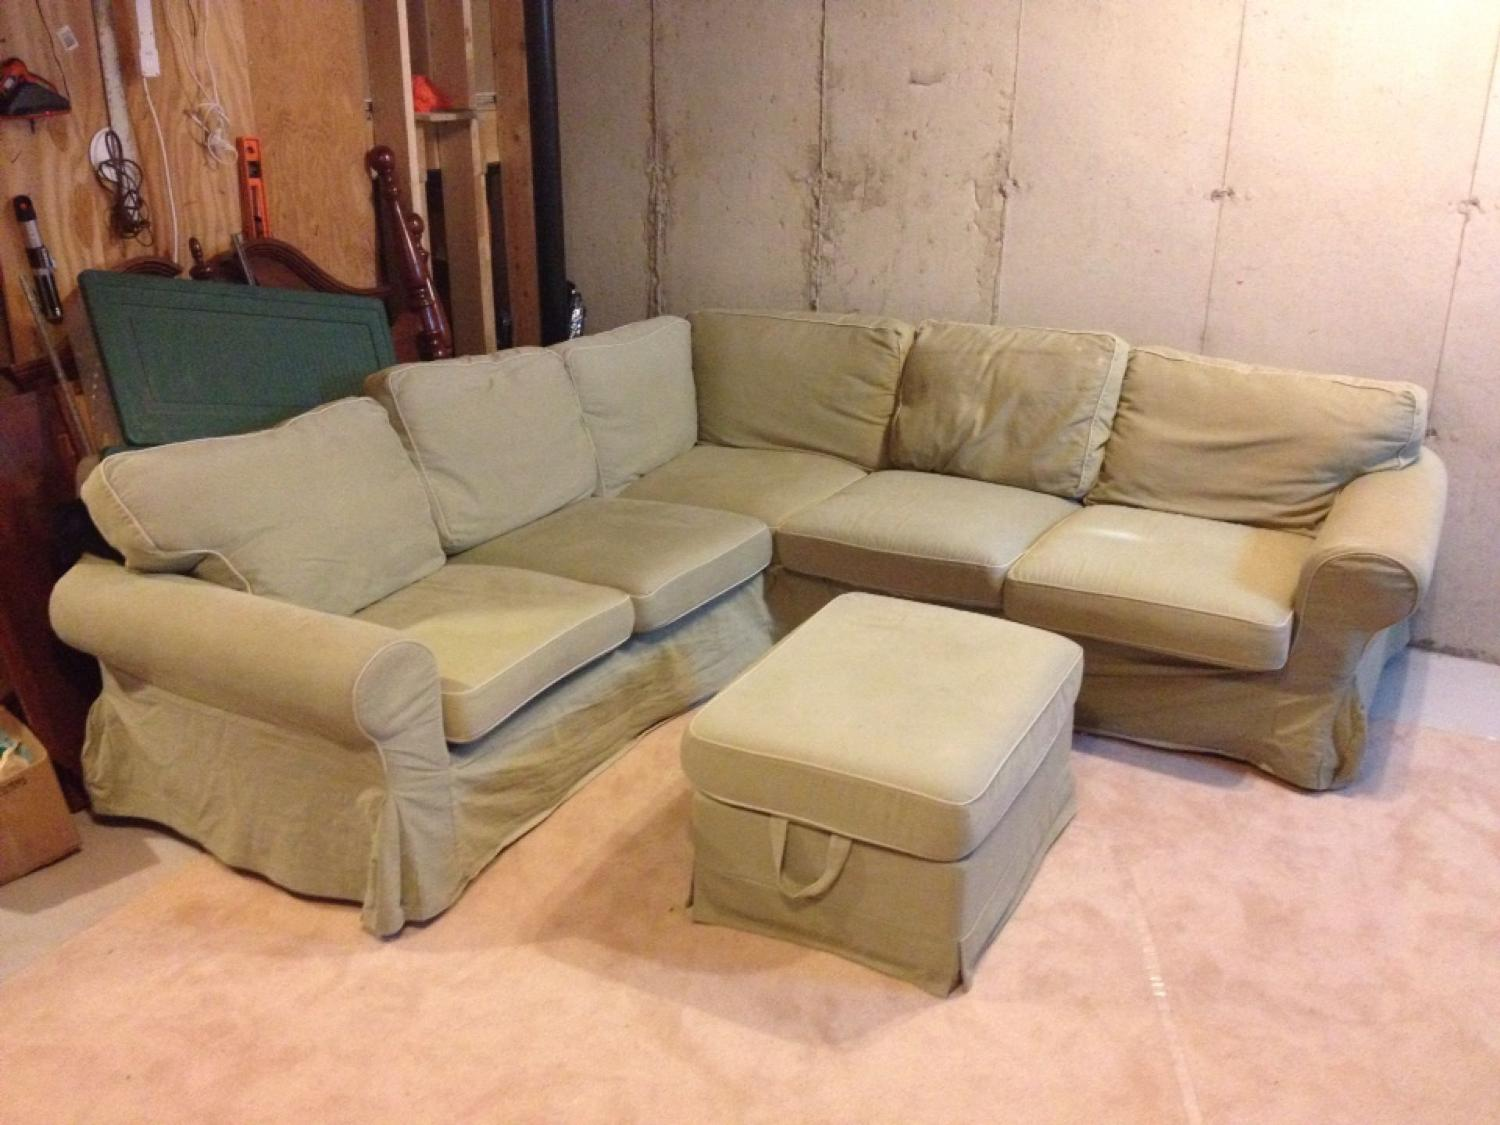 new concept 88412 5ab69 Ikea Ektorp sectional sofa and ottoman with storage area. Must pick up by  Thursday, will entertain best offer.